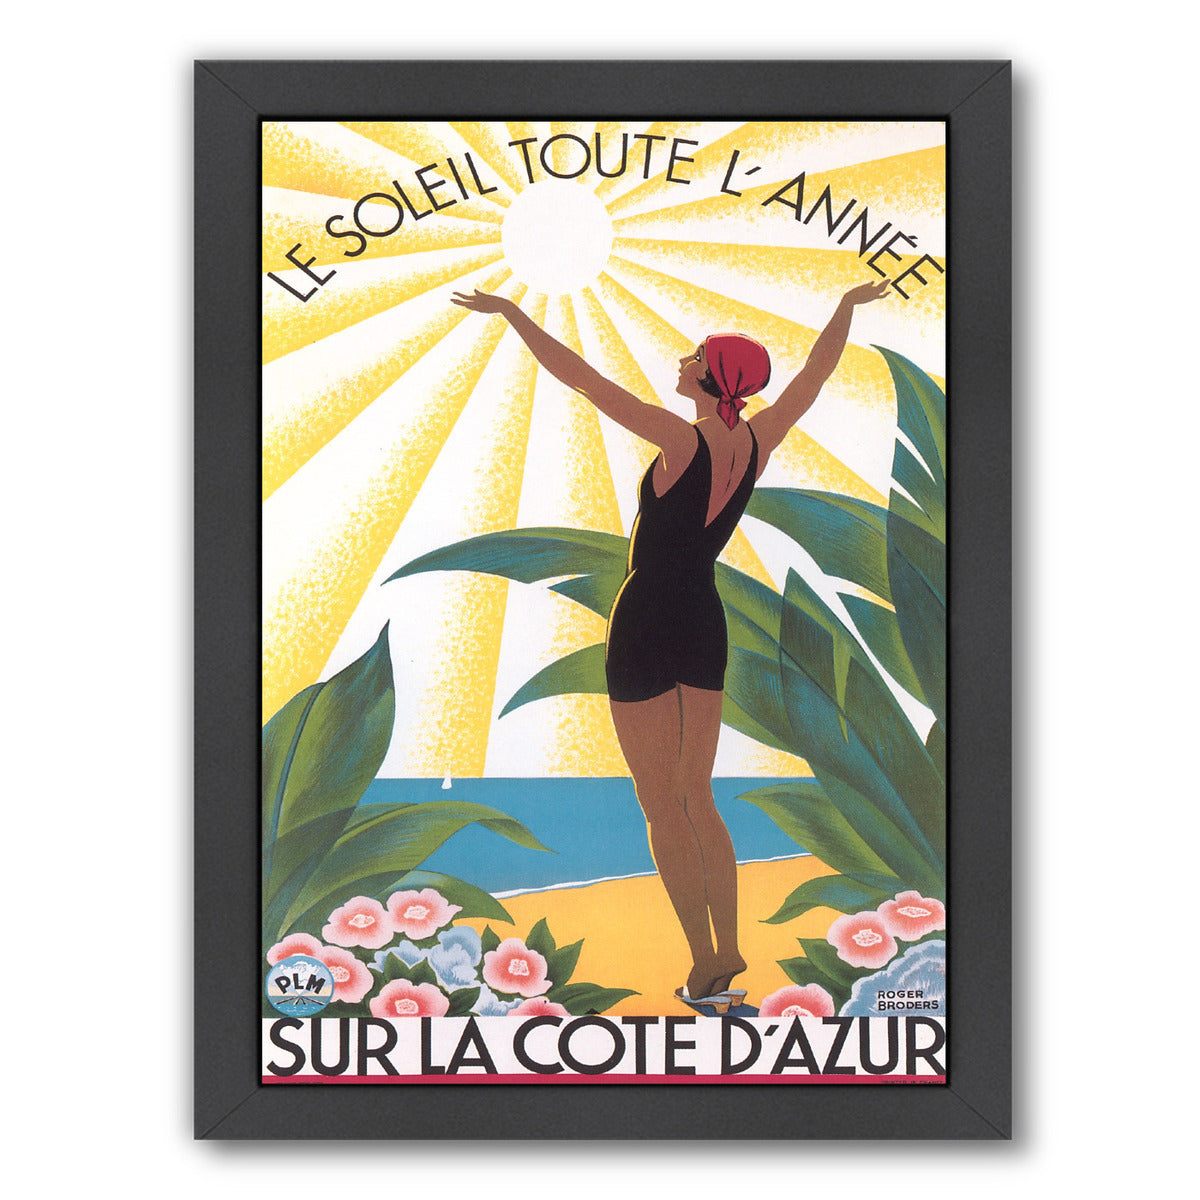 Travel Poster For Cote D Azur by Found Image Press Framed Print - Americanflat